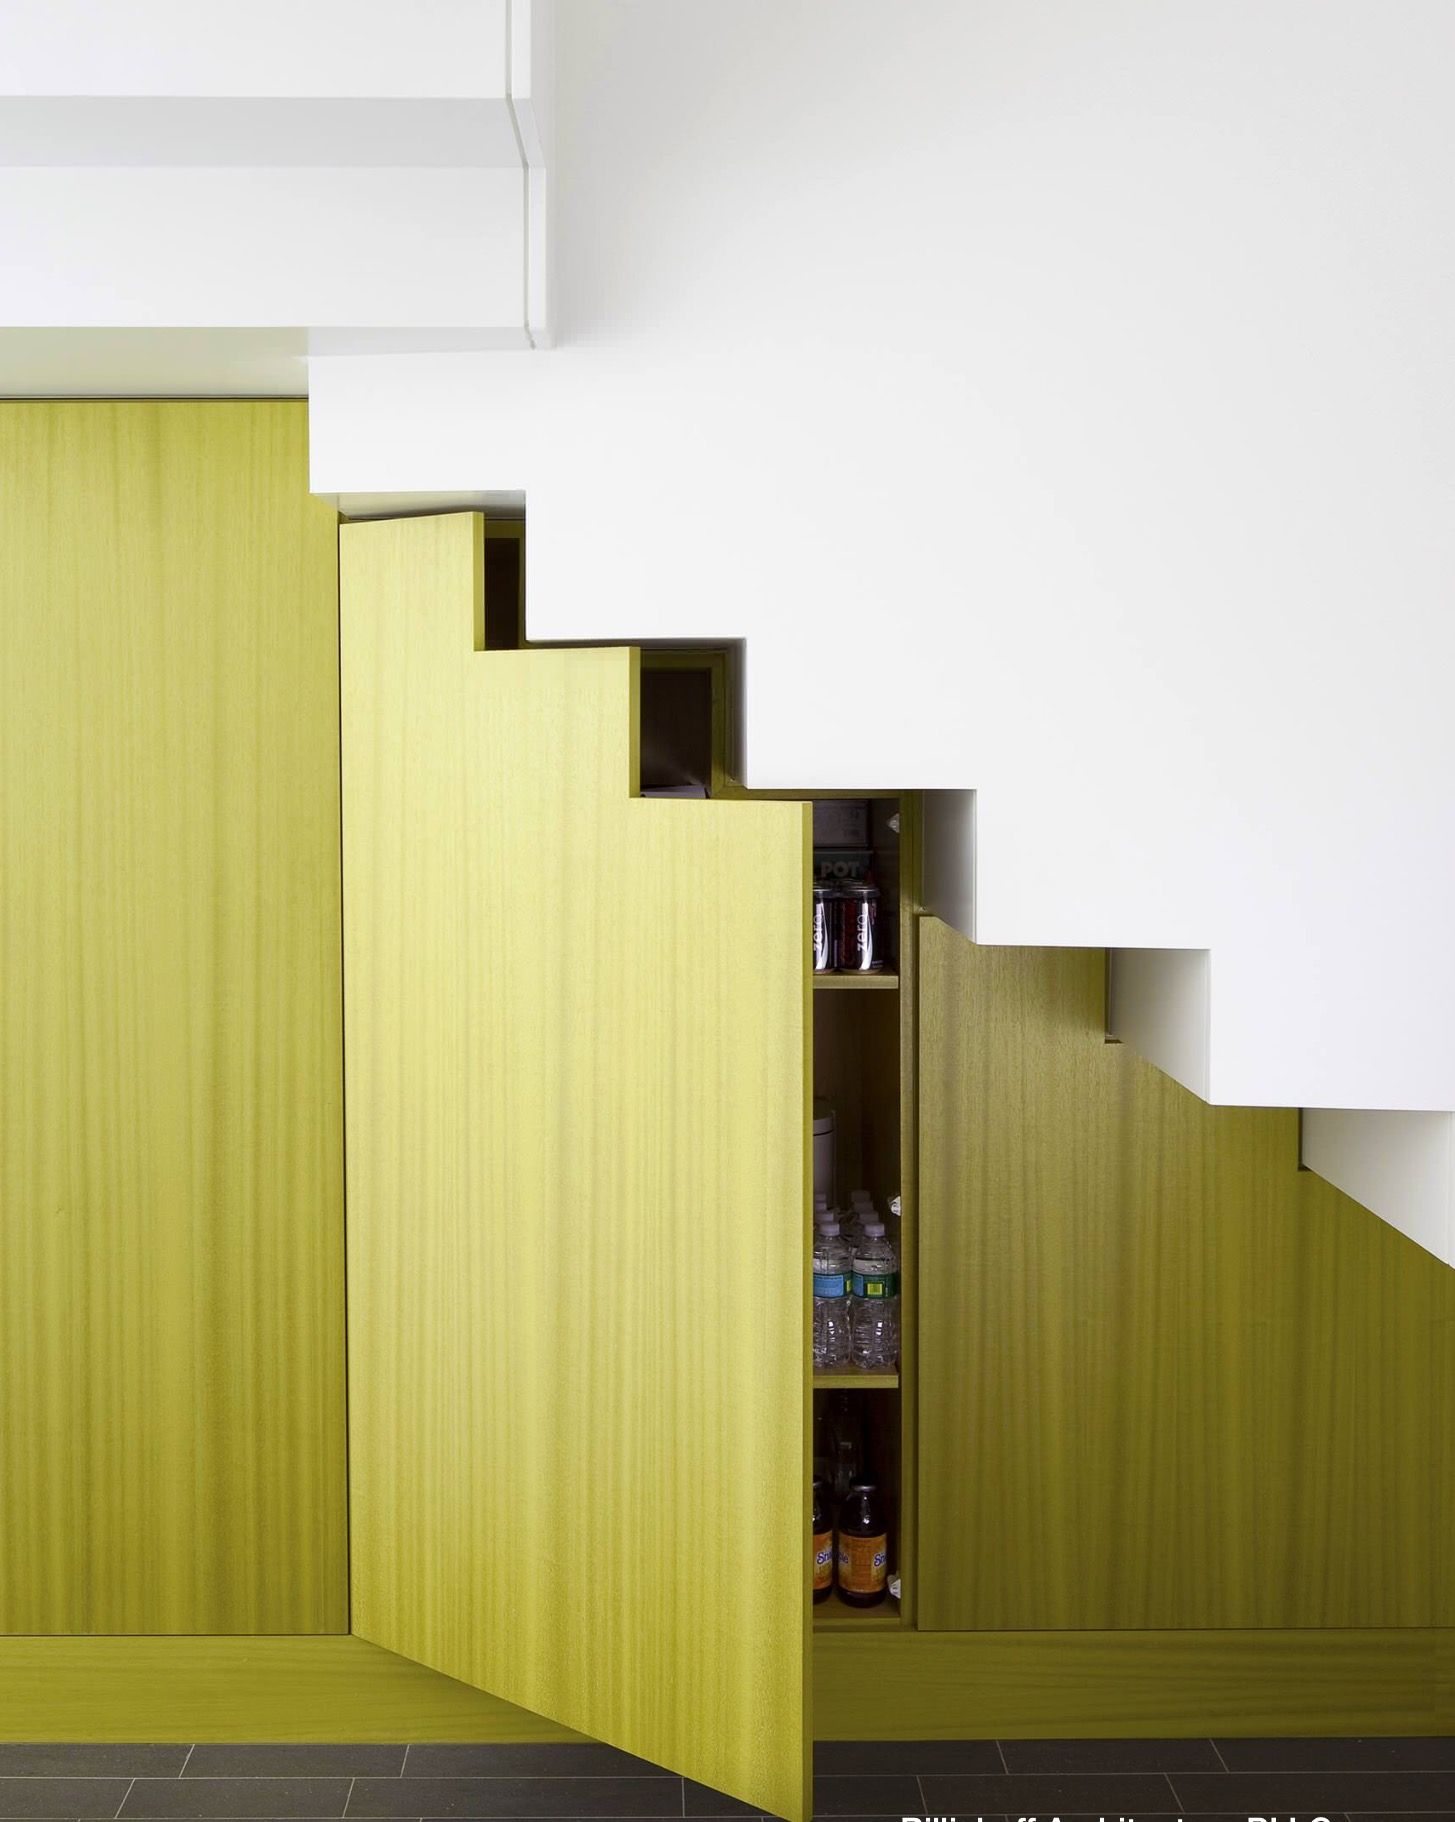 Pin by ARD architects R_David on A_STAIRS | Pinterest | Staircases ...